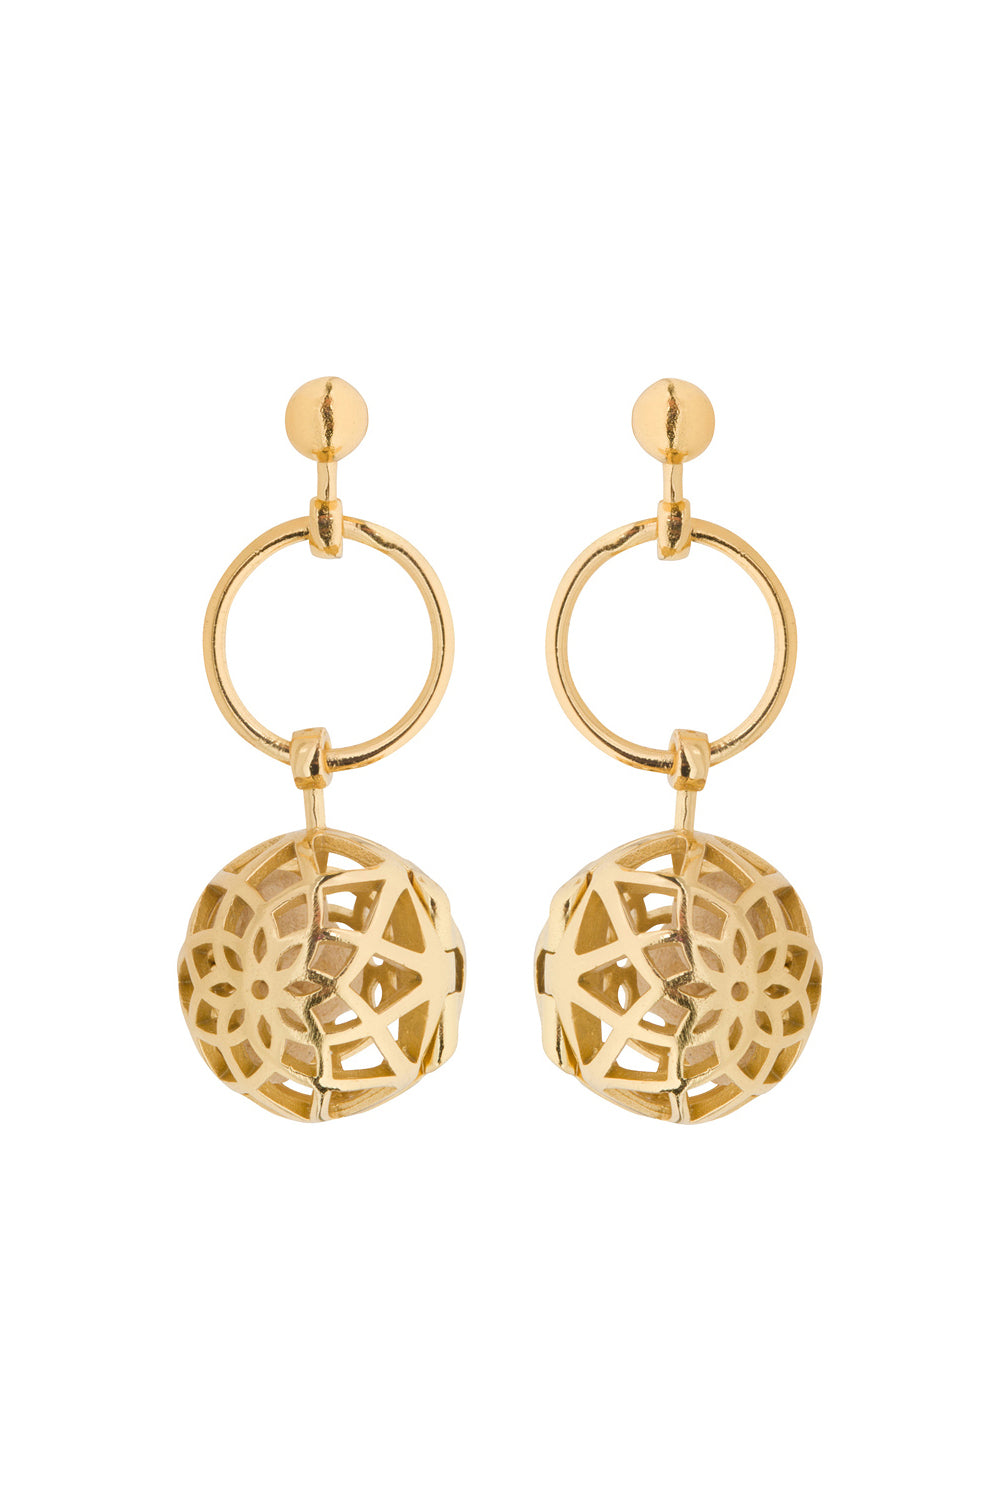 Hoop Drop Fragrance Earrings with Gold Tone Charm